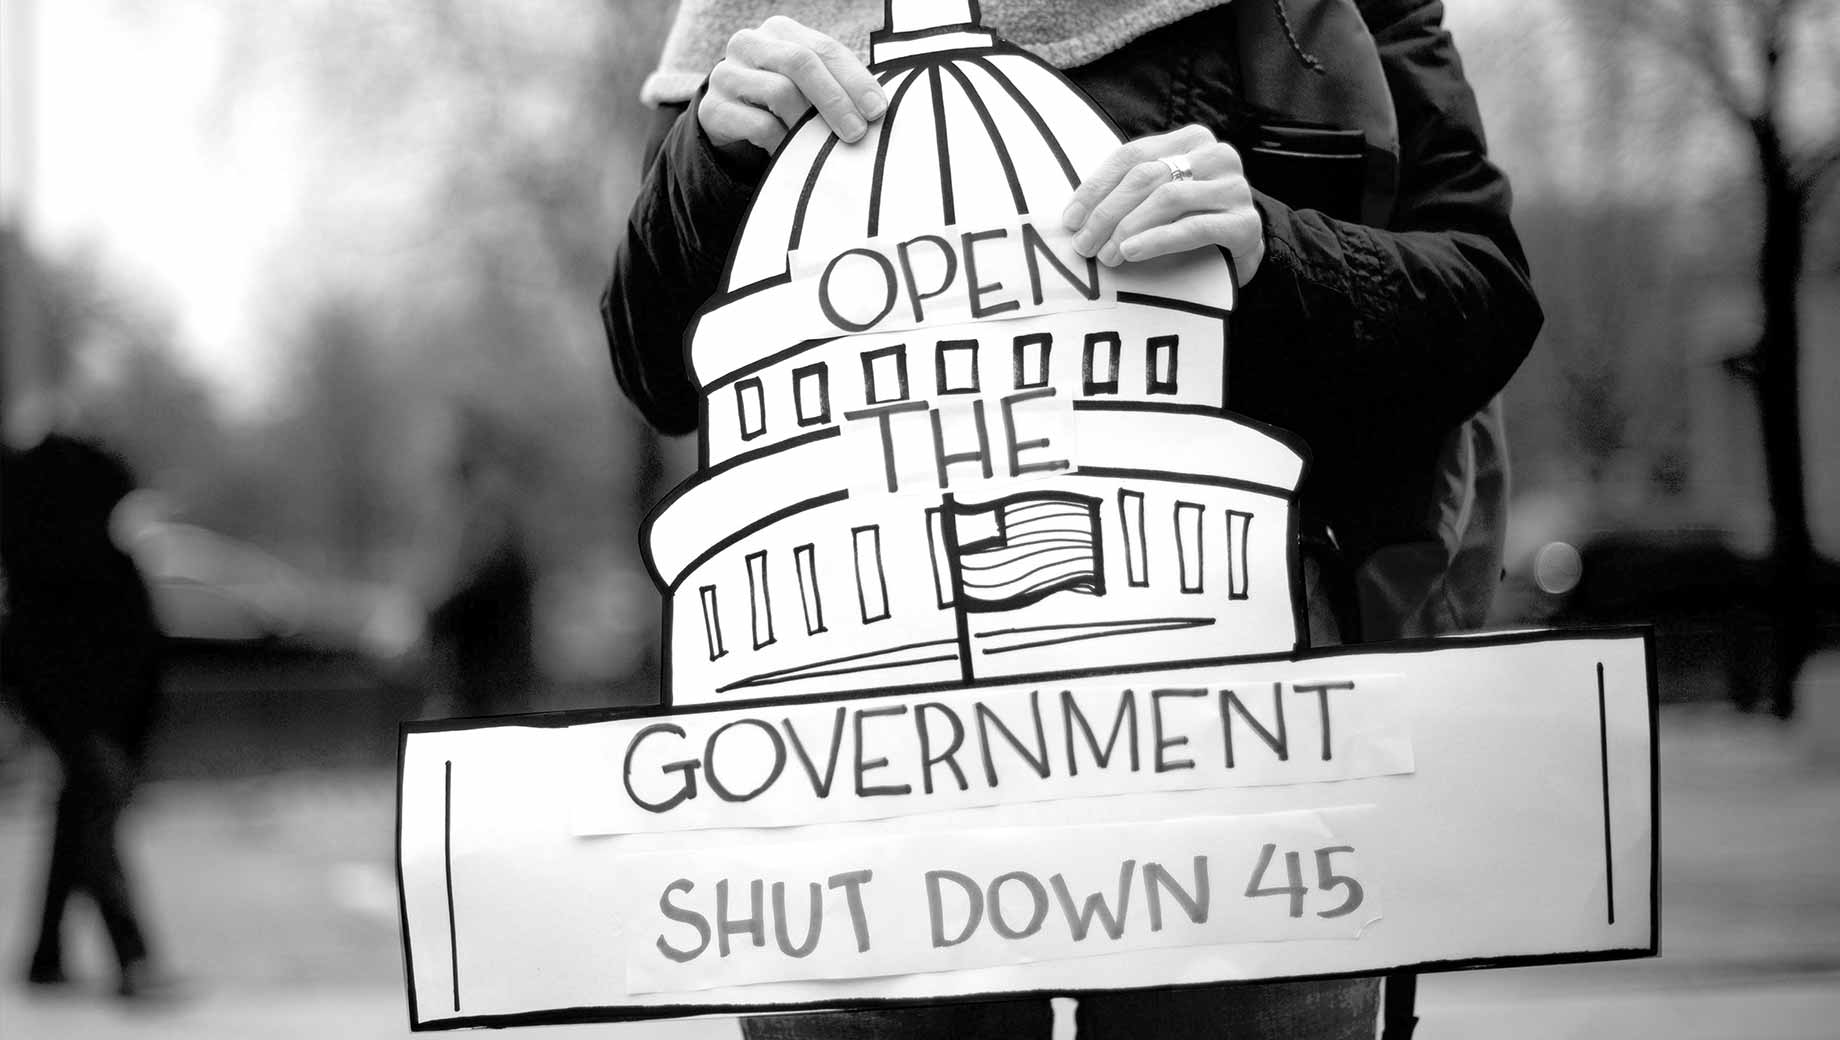 Government Spikes as Key U.S. Problem During Shutdown